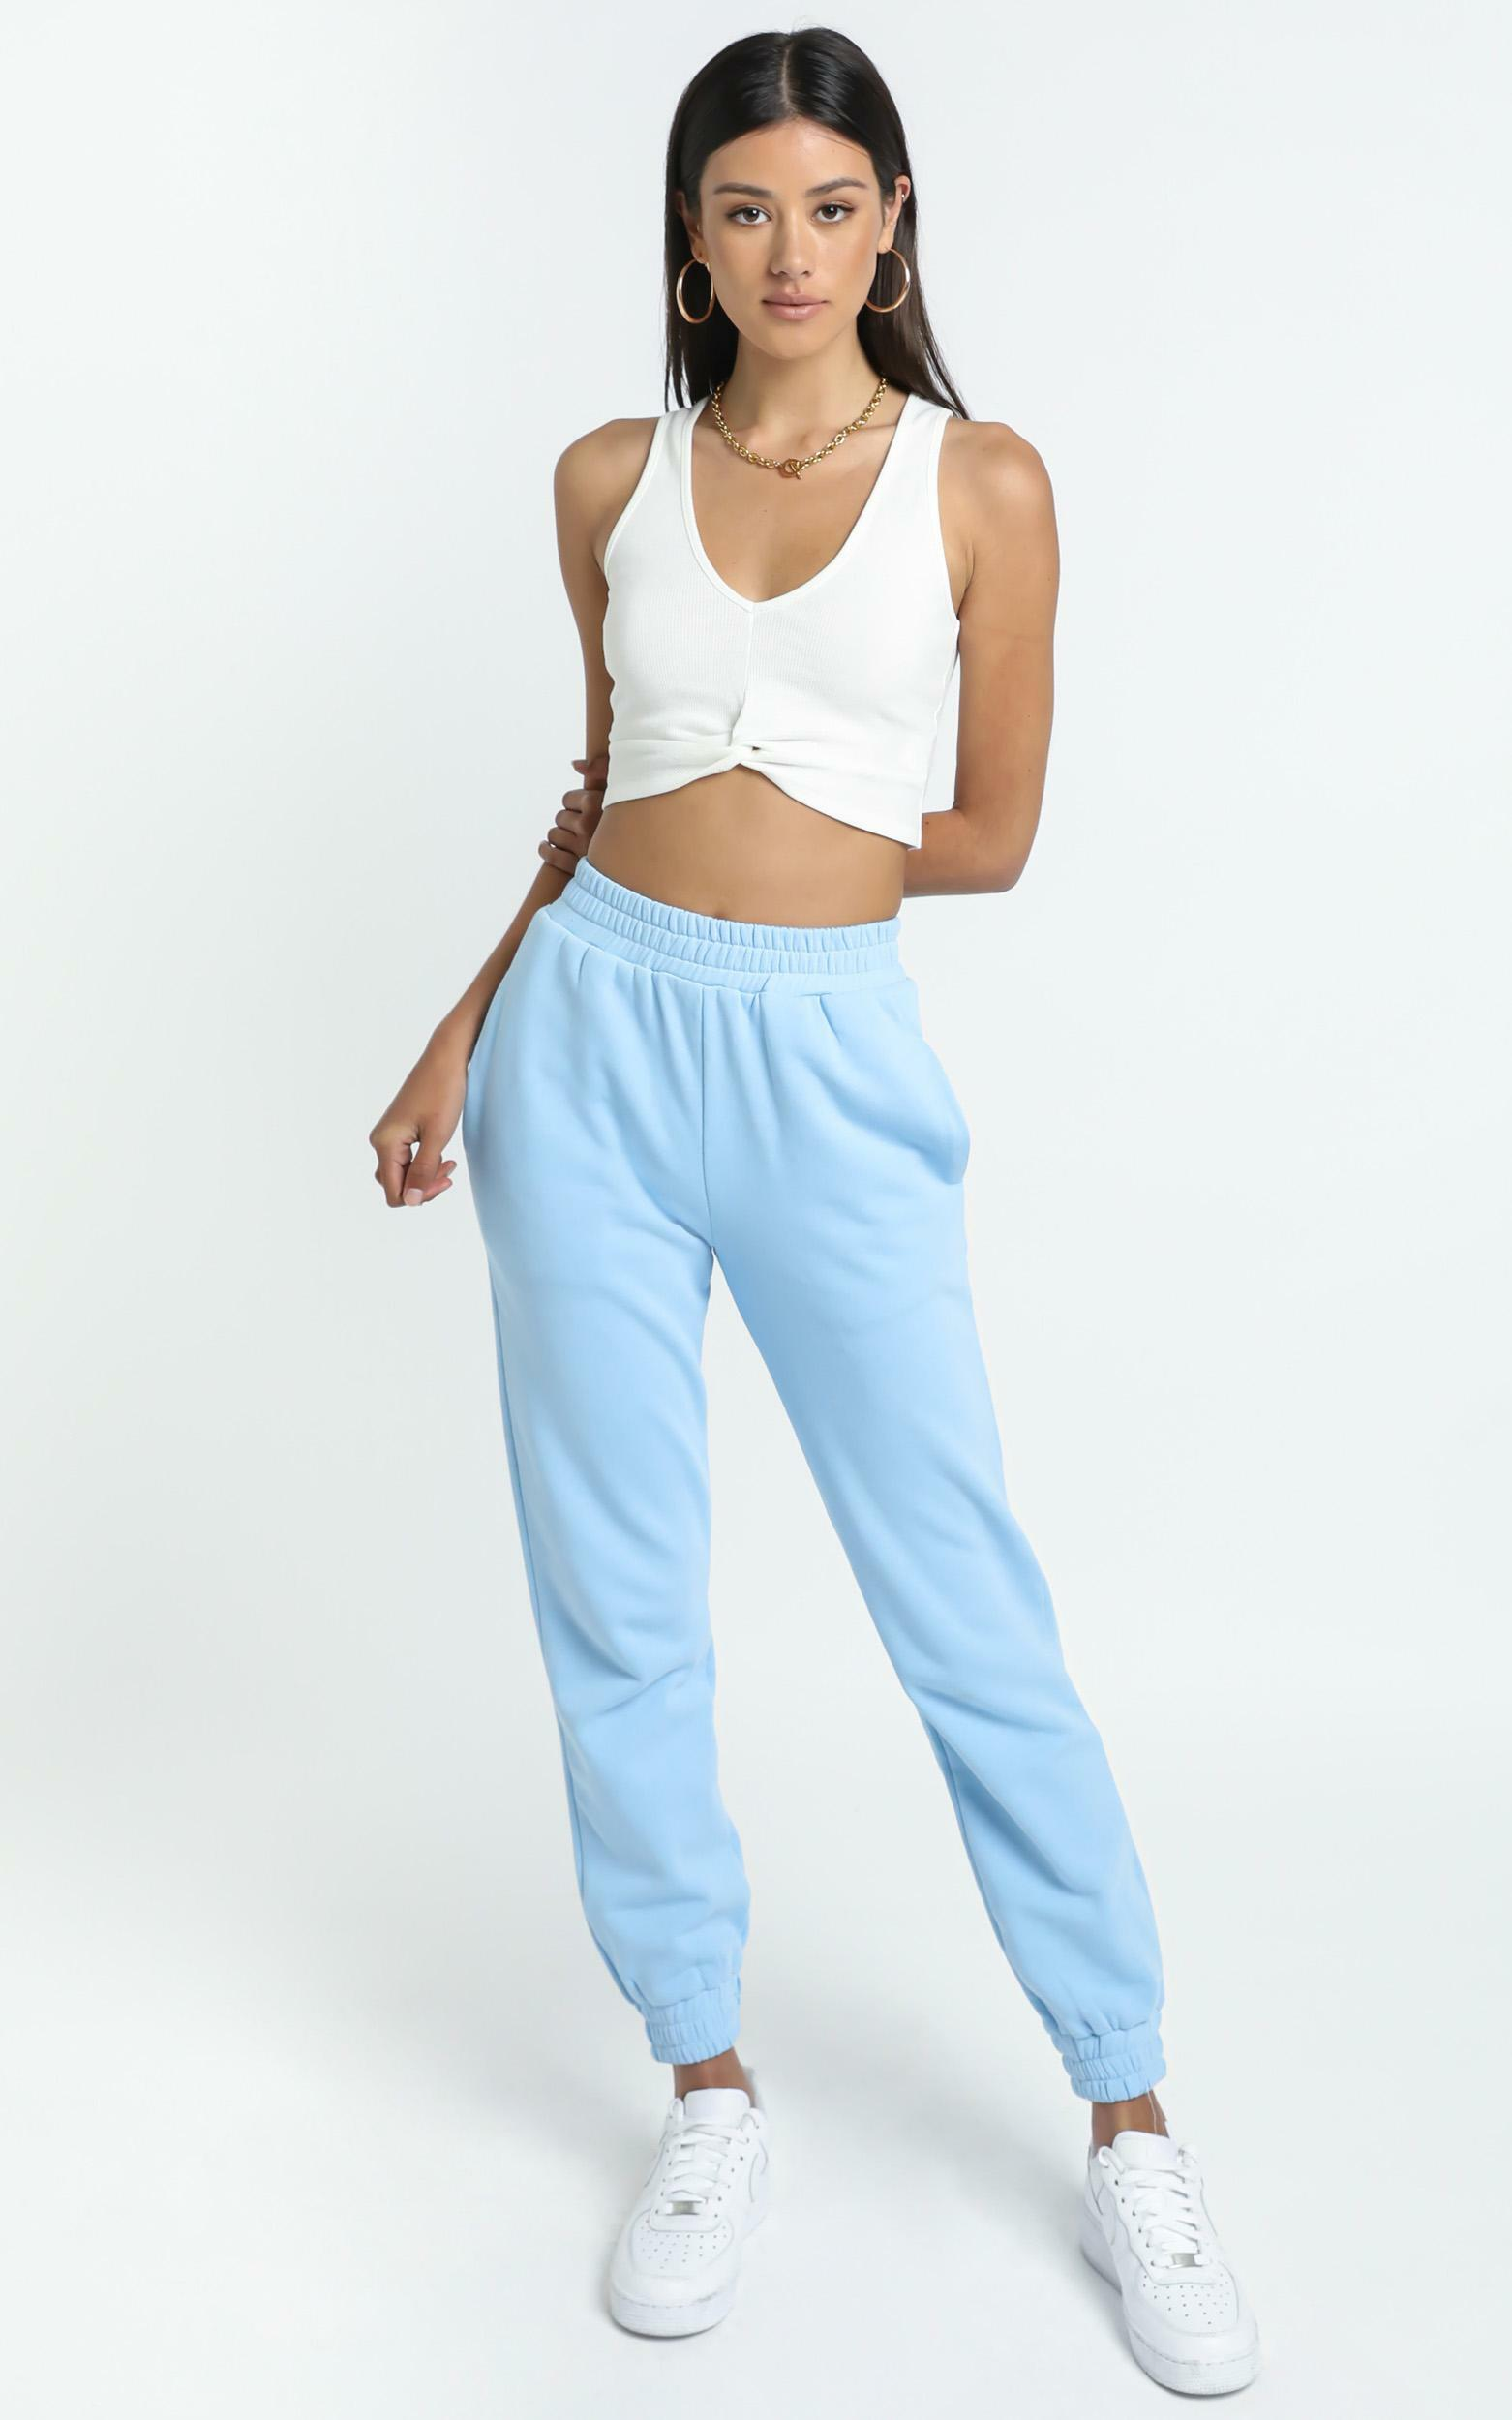 Lauzerte Sweat Pant in Blue - 14 (XL), Blue, hi-res image number null